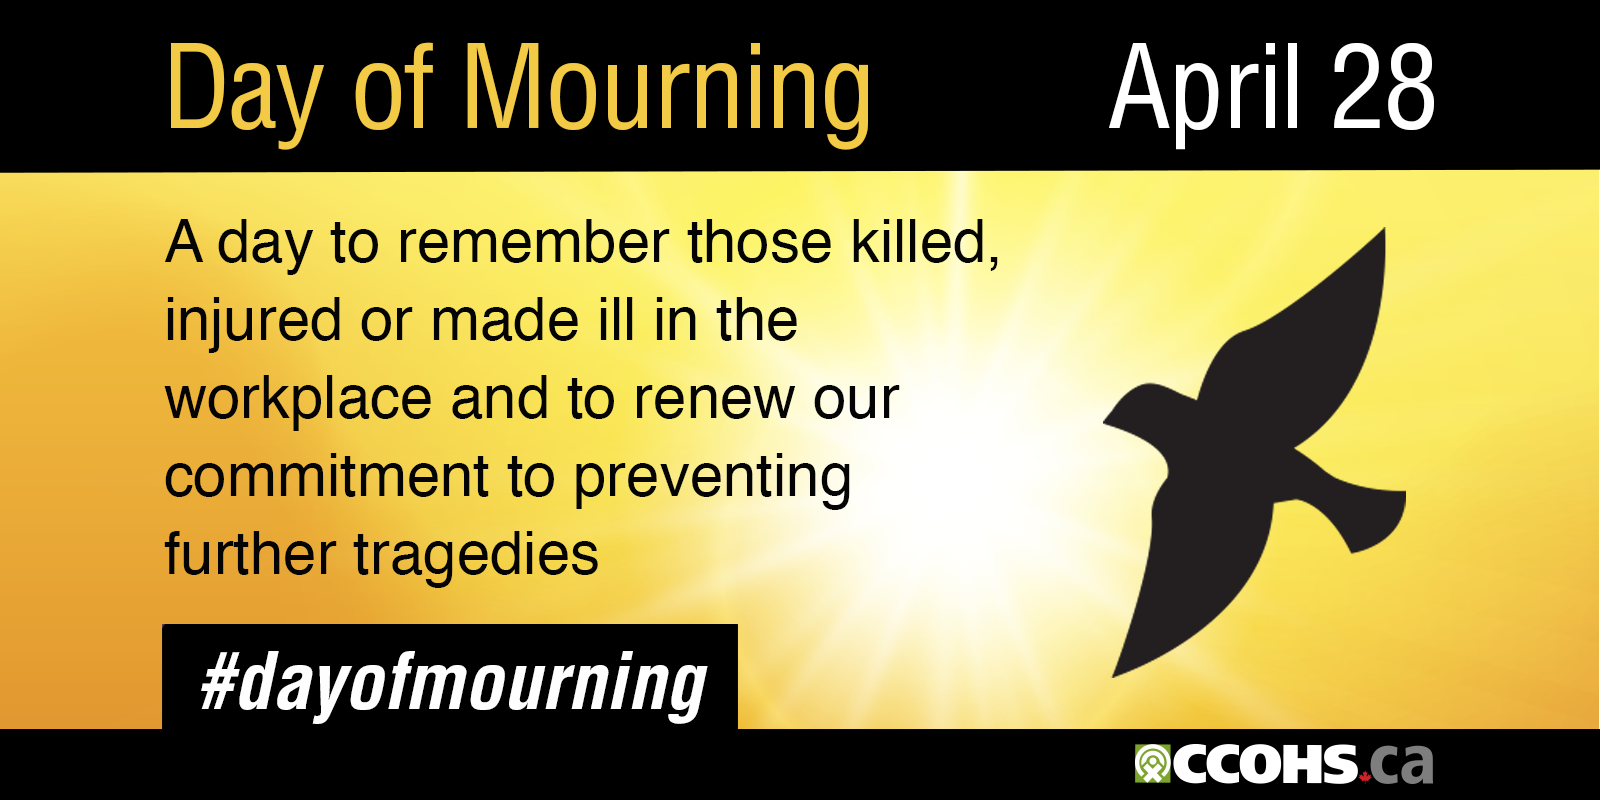 Day of Mourning - April 28